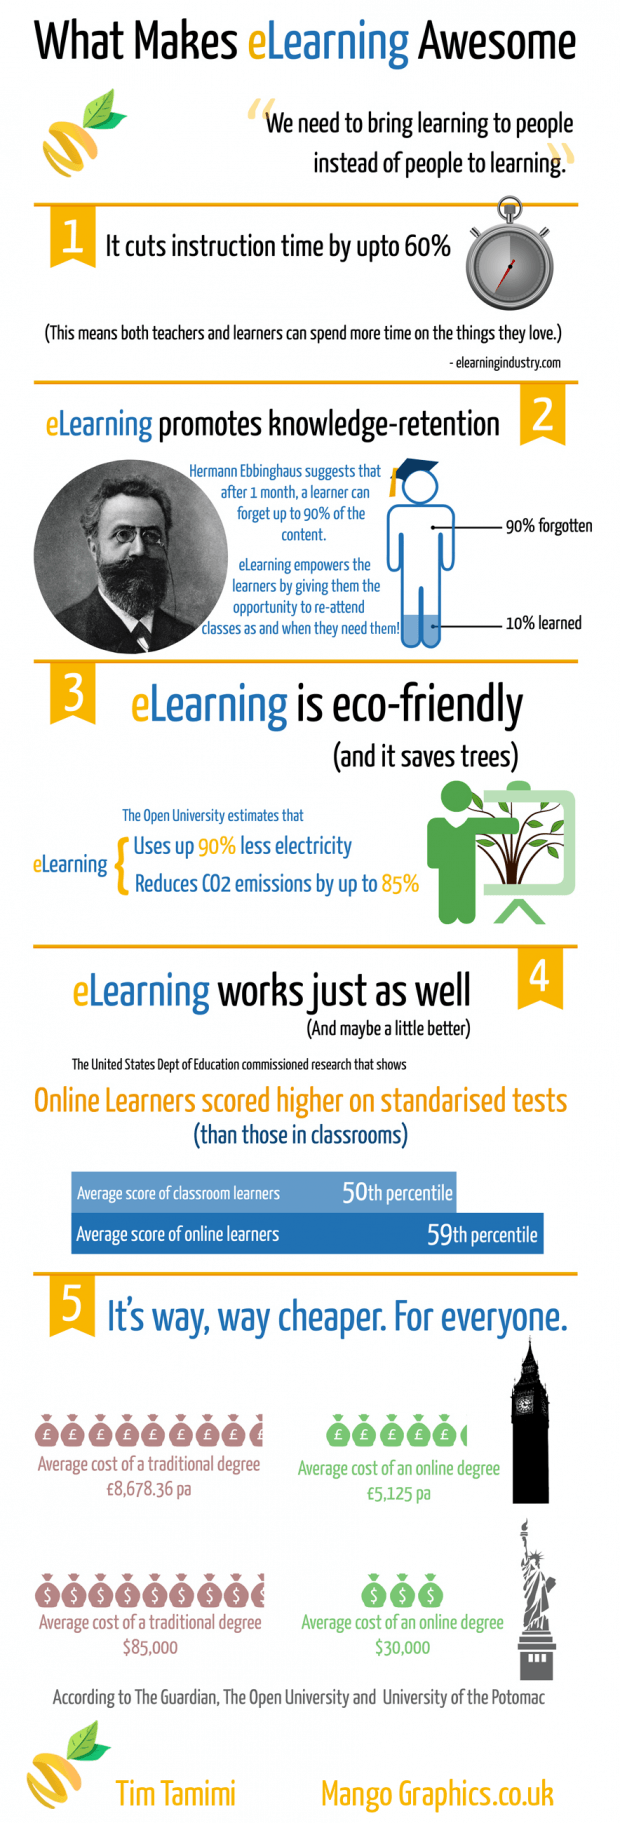 What-Makes-eLearning-Awesome-Infographic